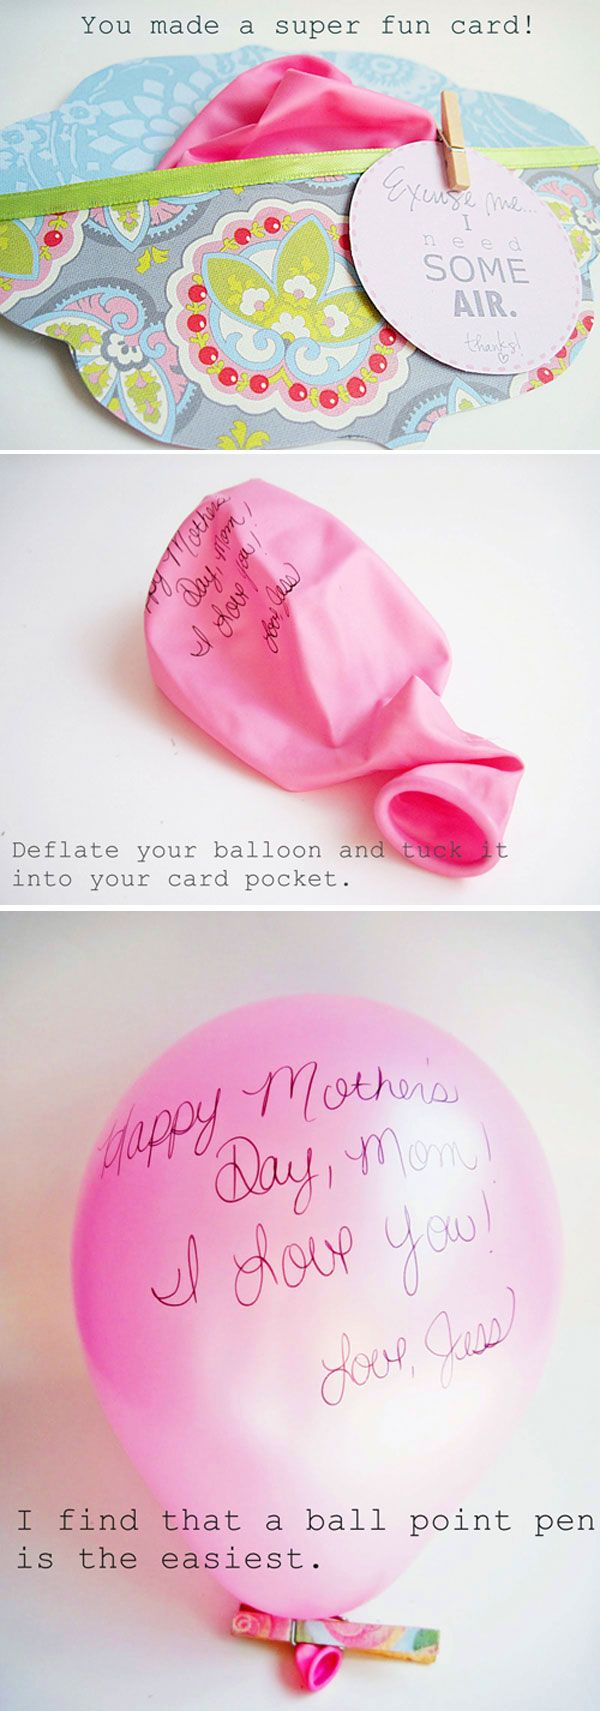 SO SUPER CUTE -- INVITATIONS VIA A BALLOON ... BLOW UP UPON RECEIVING!